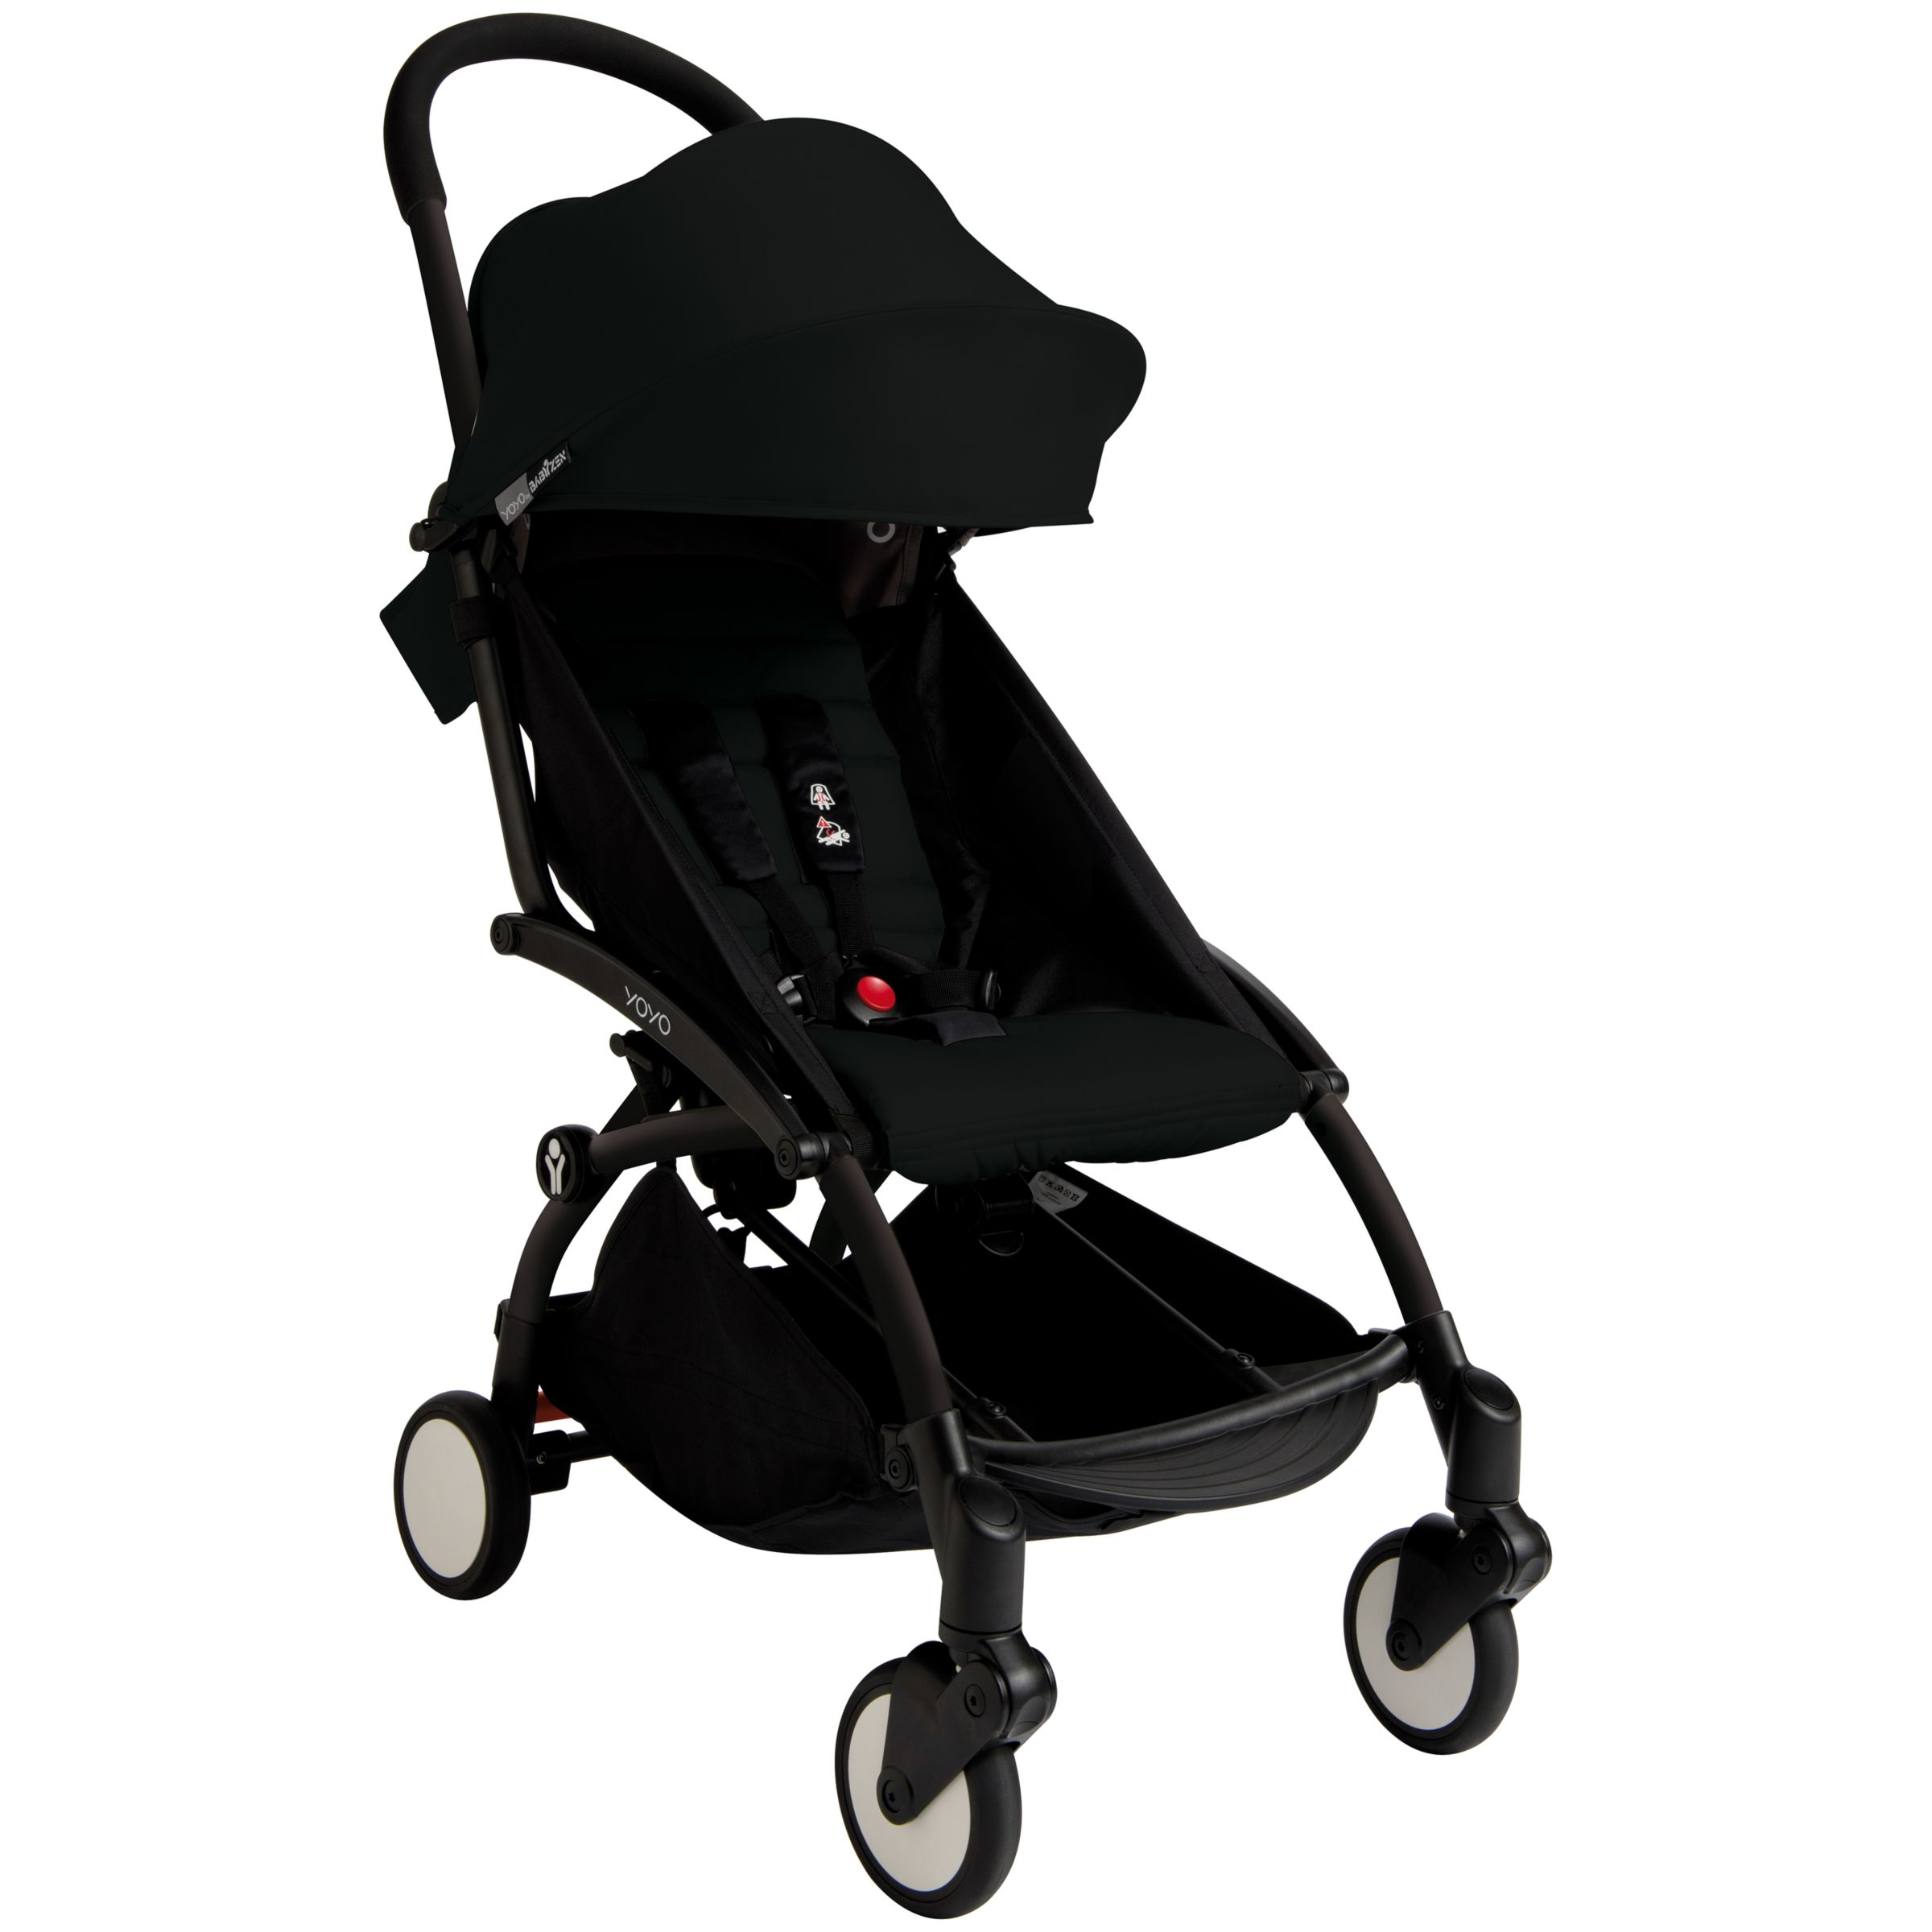 various design factory outlets various colors BABYZEN YOYO+ Pushchair, Black/Black